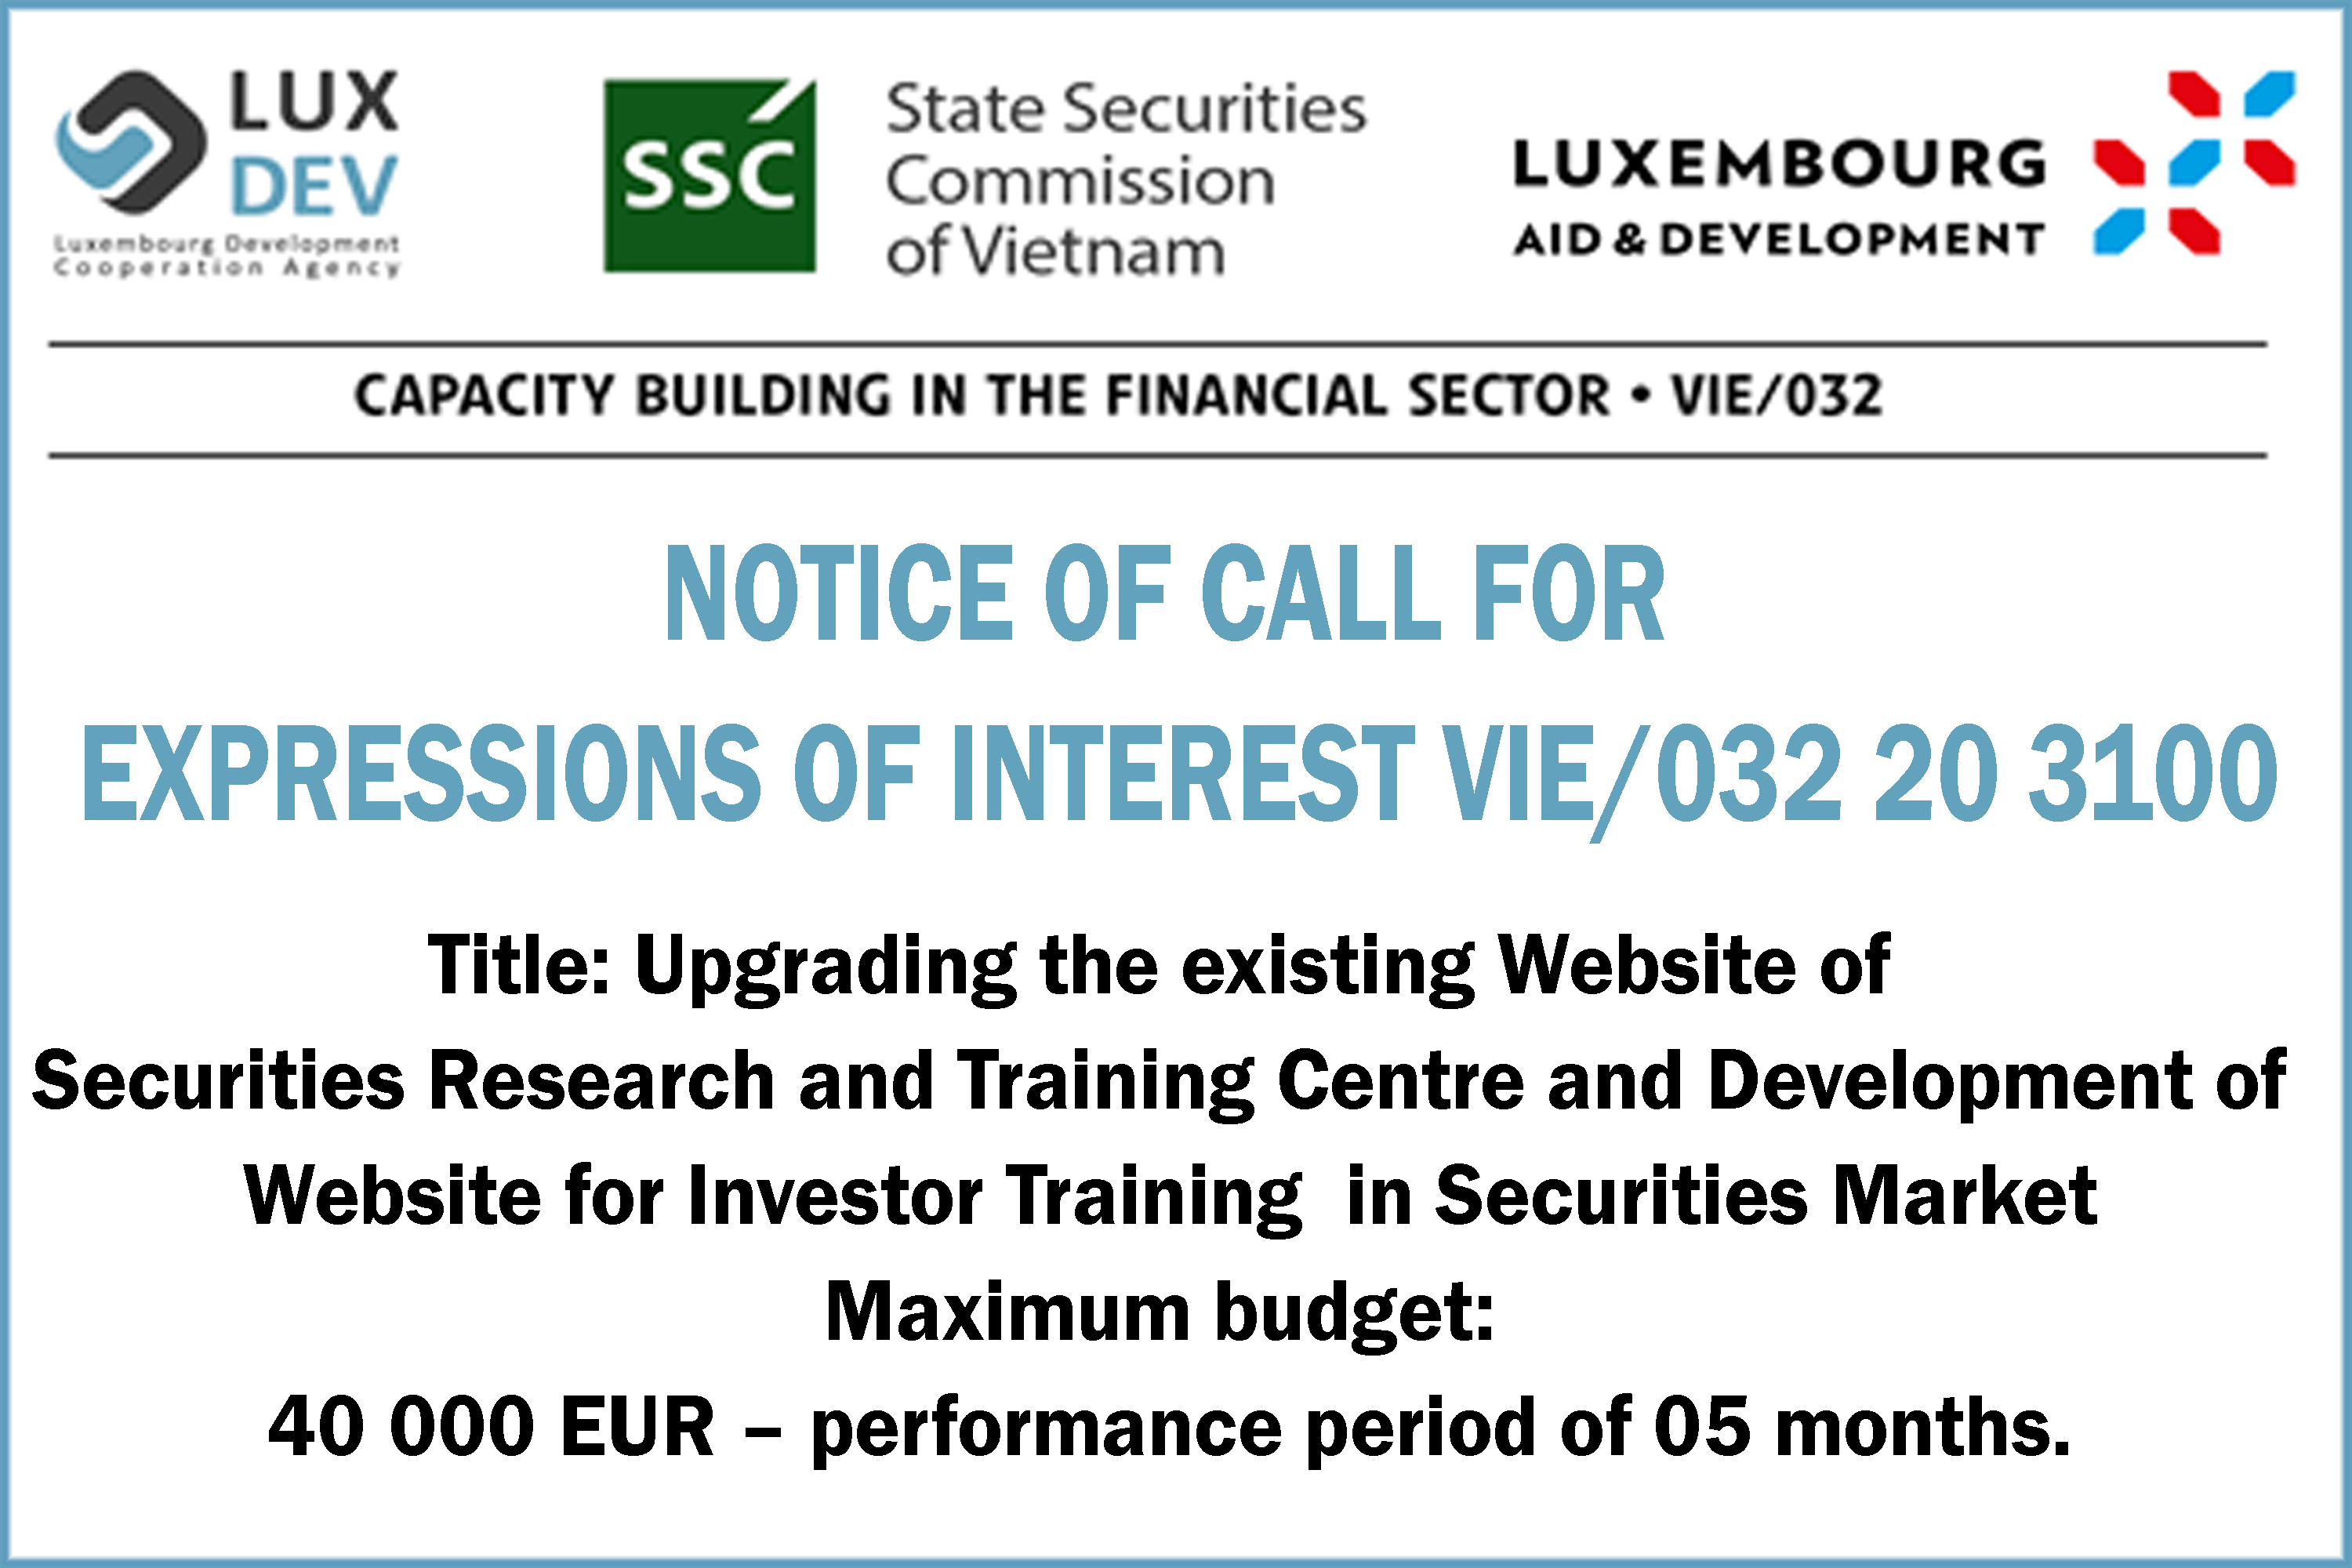 LuxDev - Call for expressions of interest Vie/032 20 3100